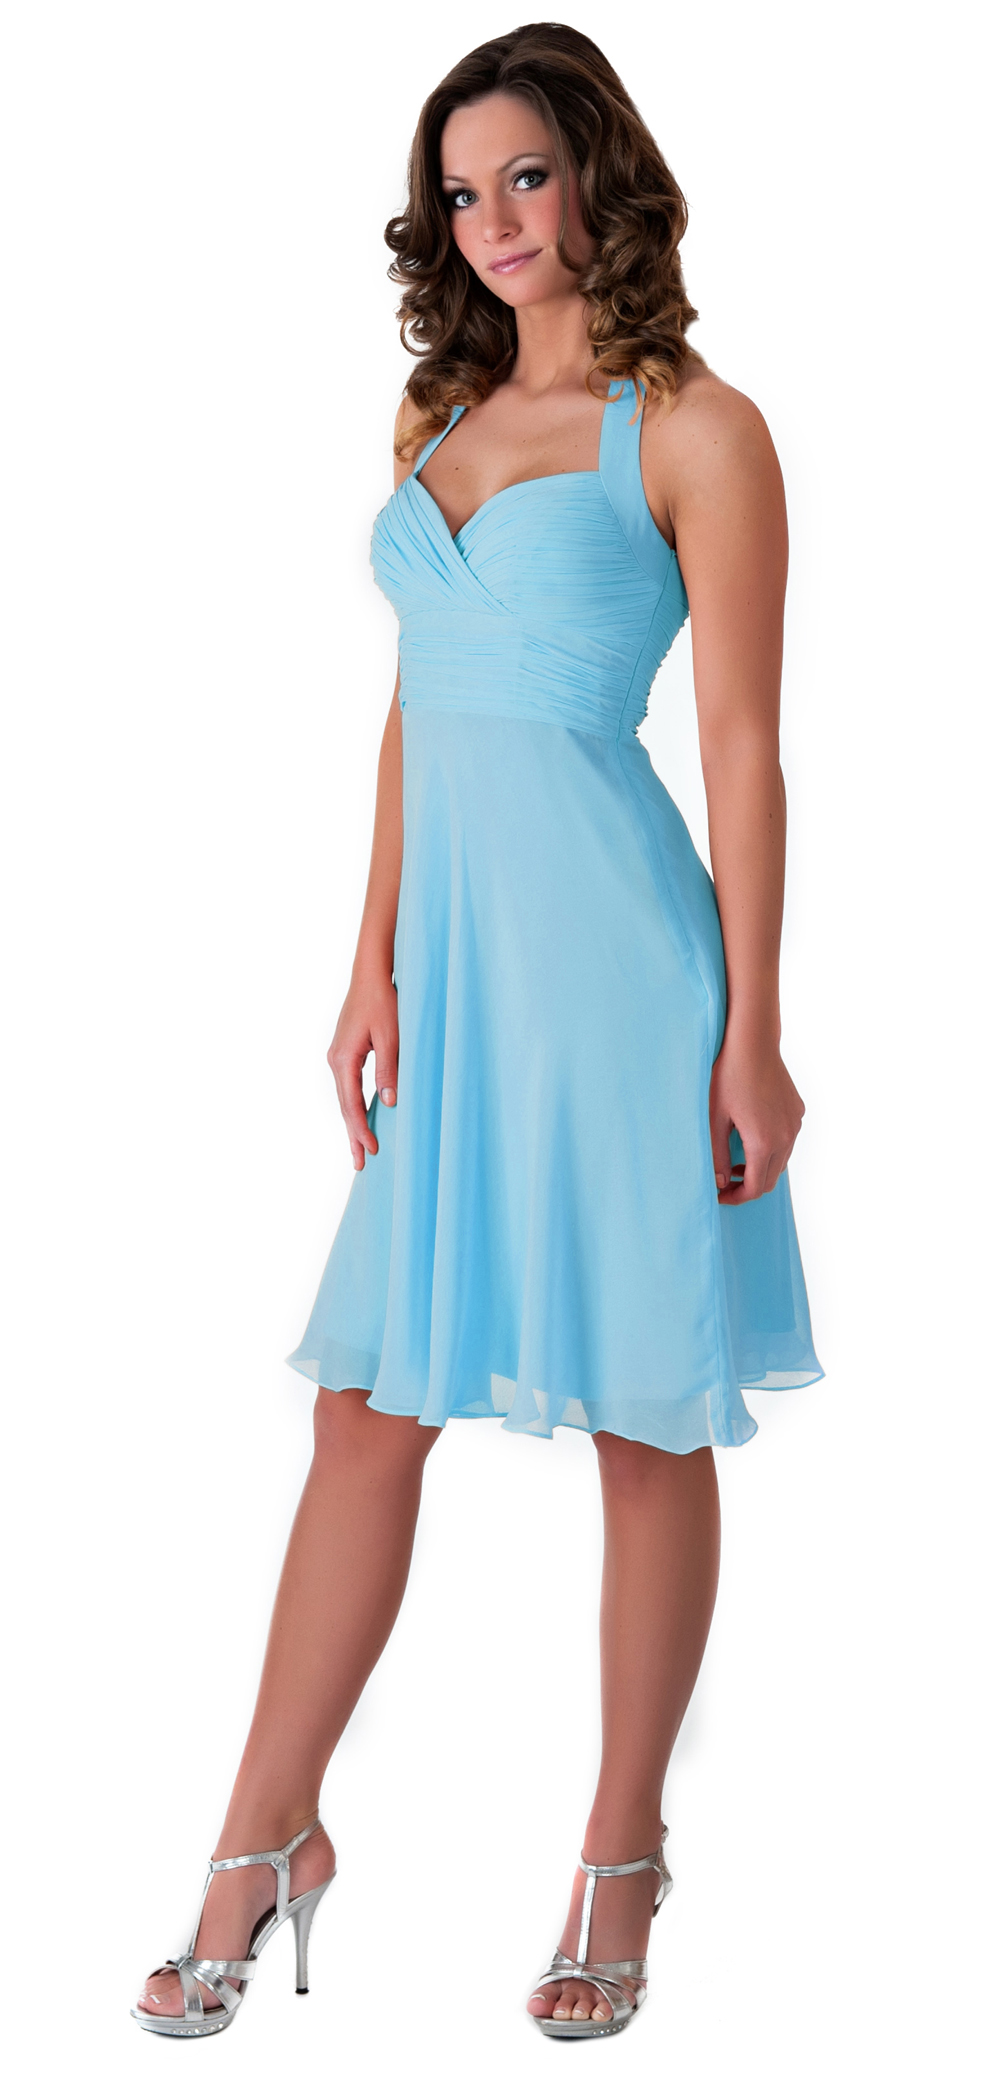 18 Bridesmaid Dresses Under 100 By Lulu S: Formal Dress Pleated Halter Evening Gown Bridesmaid